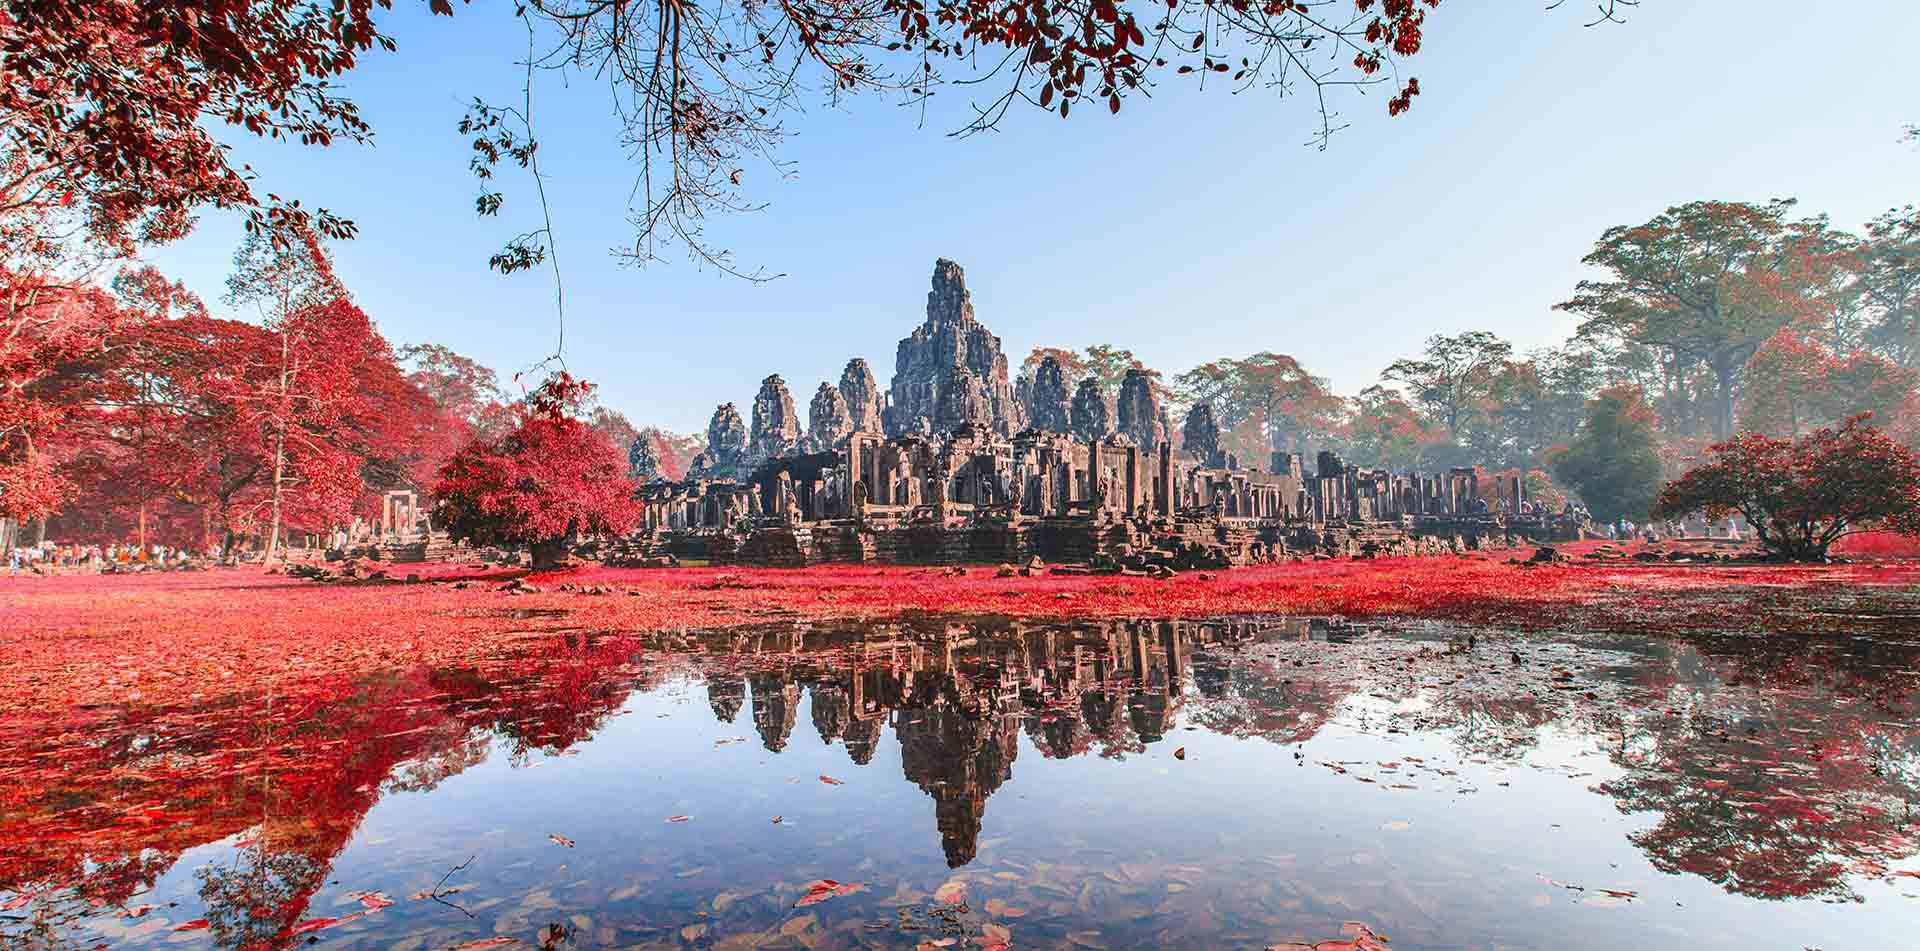 Asia Cambodia Siem Reap Angkor Wat Bayon temple surrounded by red trees - luxury vacation destinations